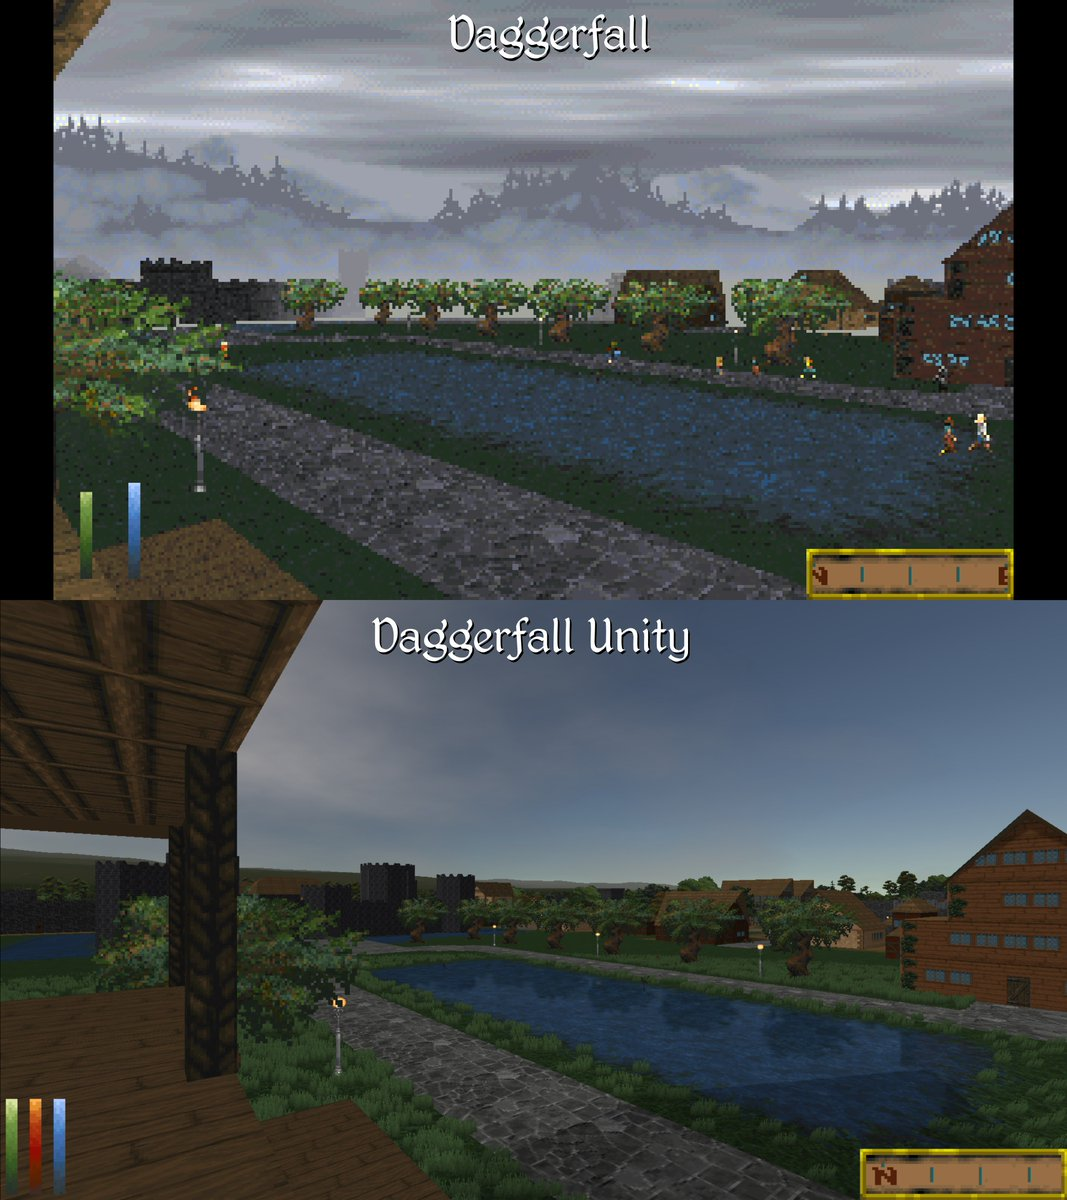 Vapourware - Daggerfall Unity isnt Vaporware | Page 24 | Visiting